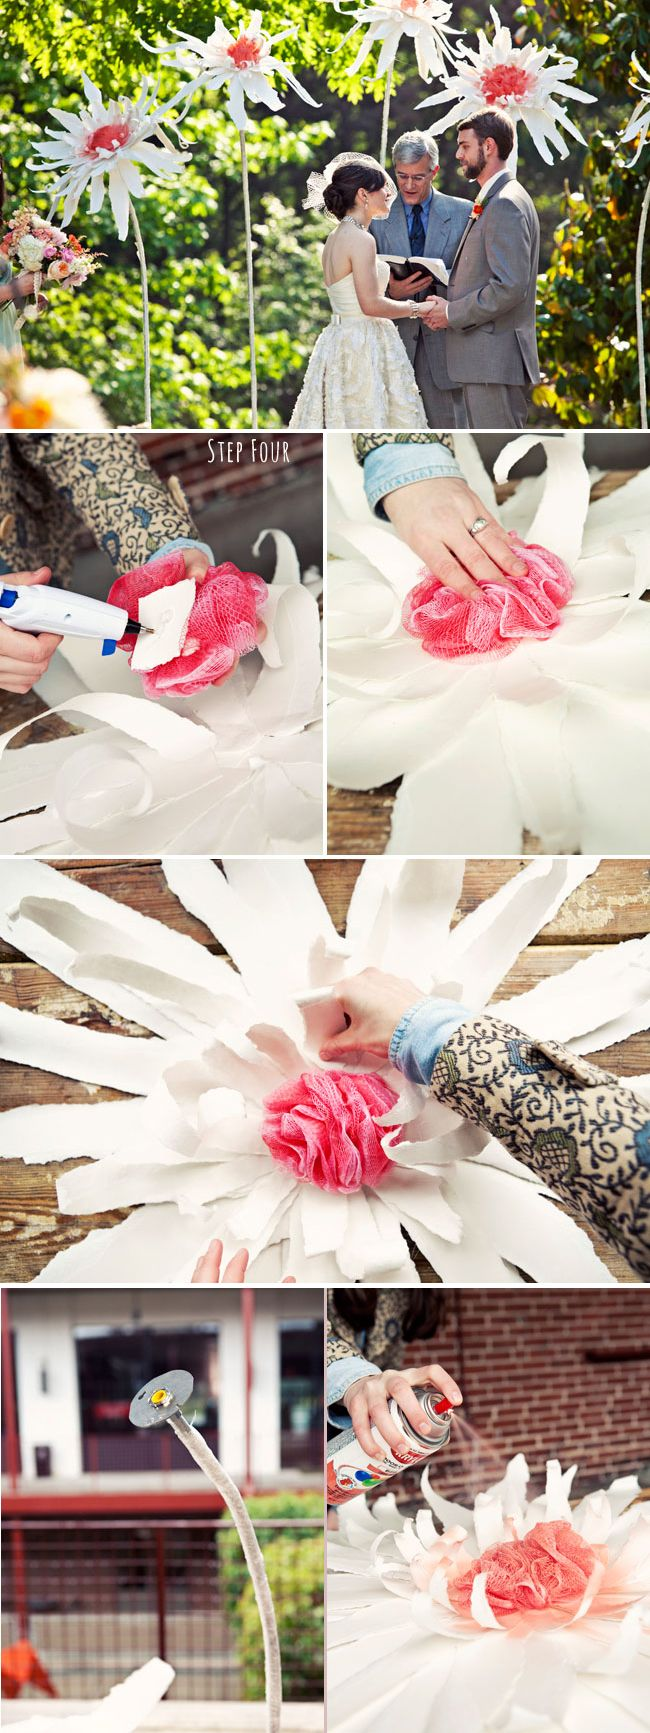 diy giant paper flowers - tutorial from green wedding shoes, here: http://greenweddingshoes.com/diy-giant-flowers/ omg can't believe these are my friends!! total celebs now.